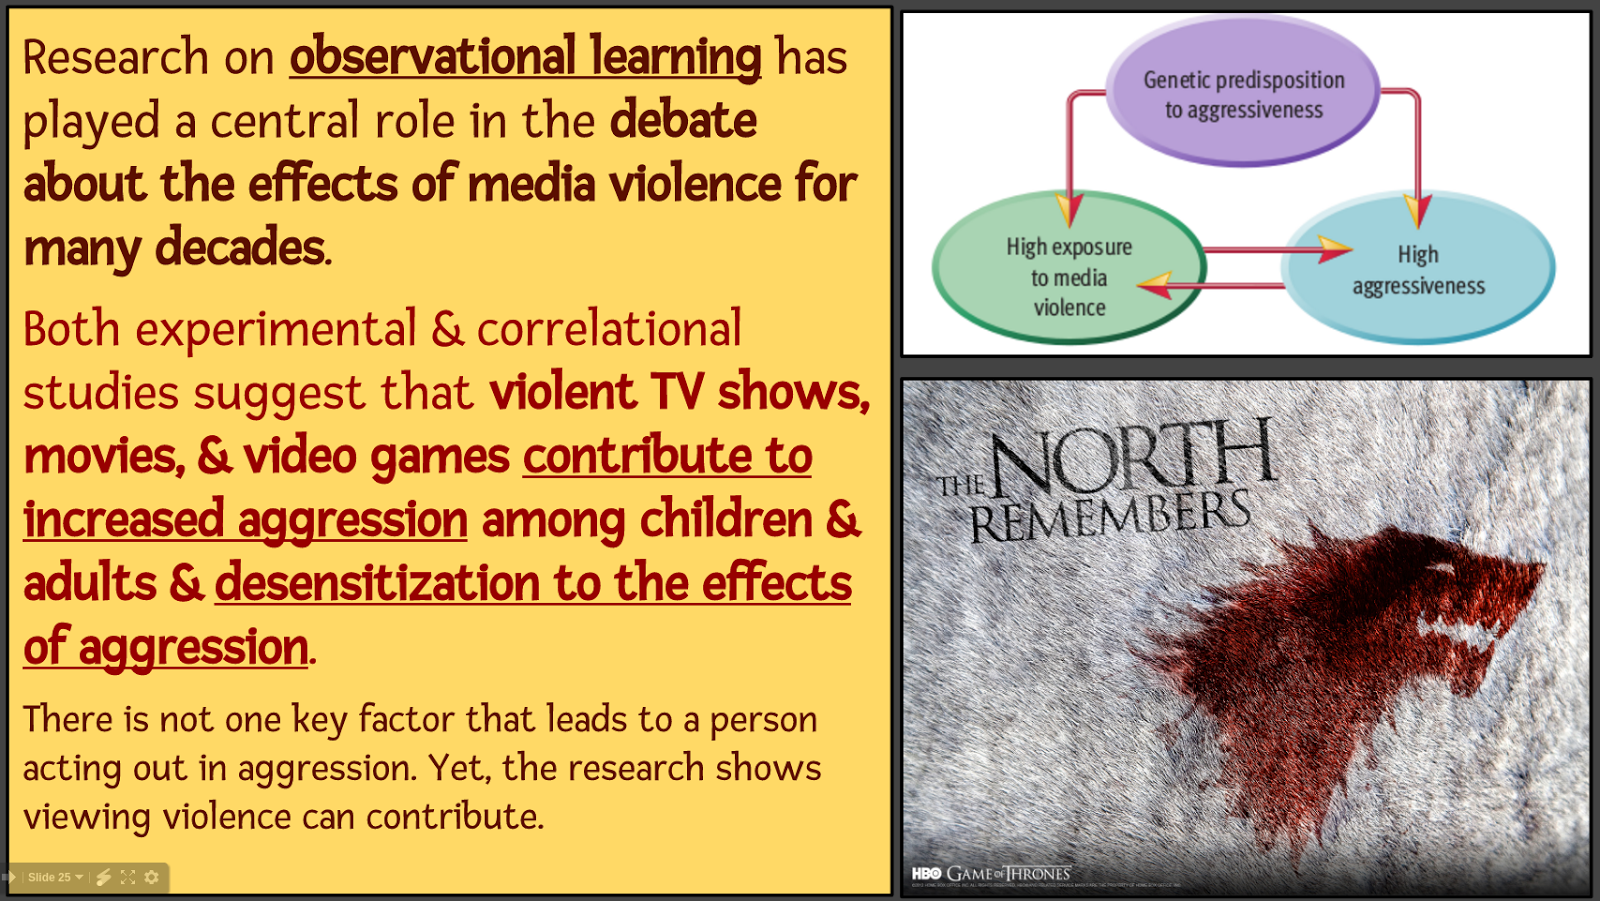 the effects of media violence de sensitization media essay The effect of violence in the media on children essay 1150 words | 5 pages technologically advanced society however, there is a big controversy questioning the effects of these media outlets on children.